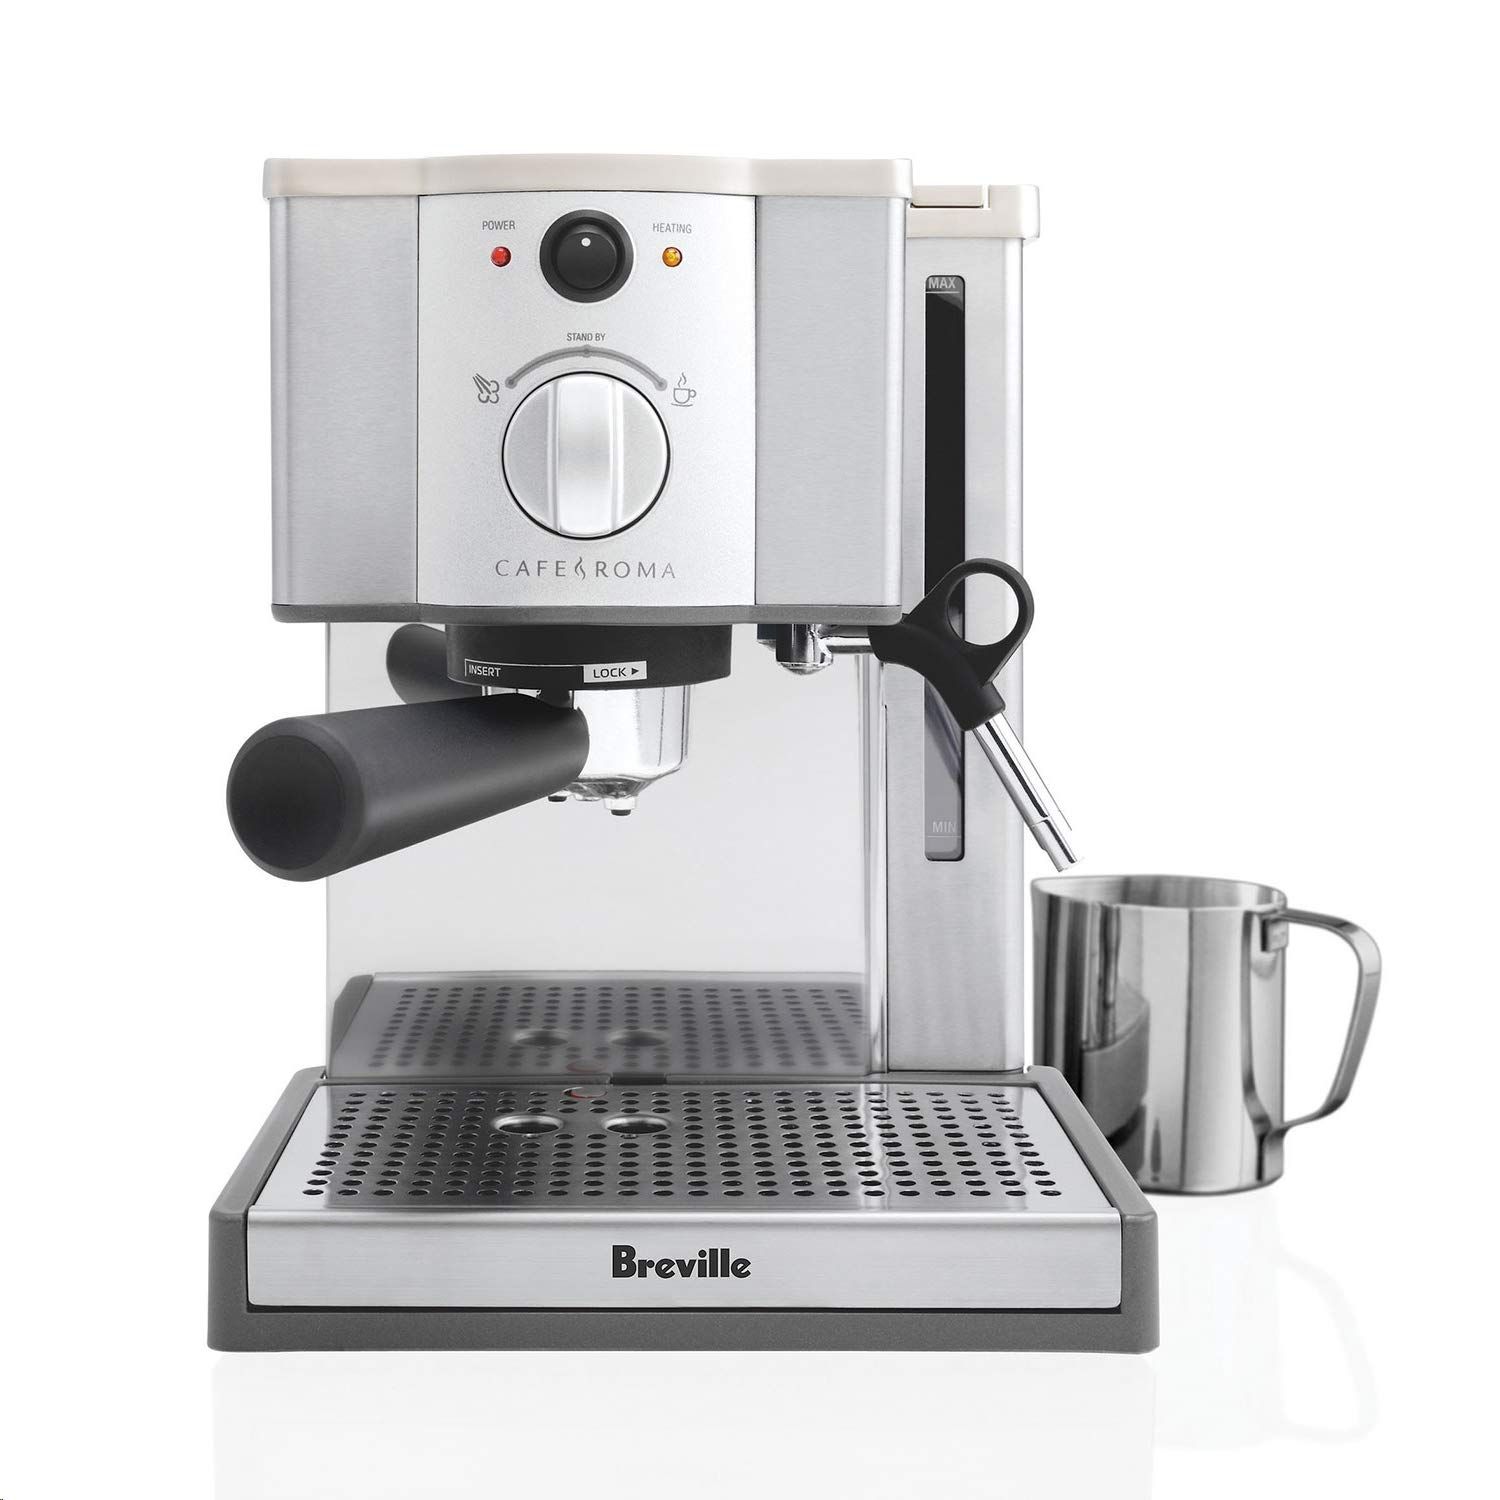 Gifts for Coffee Lovers: Breville Espresso Maker